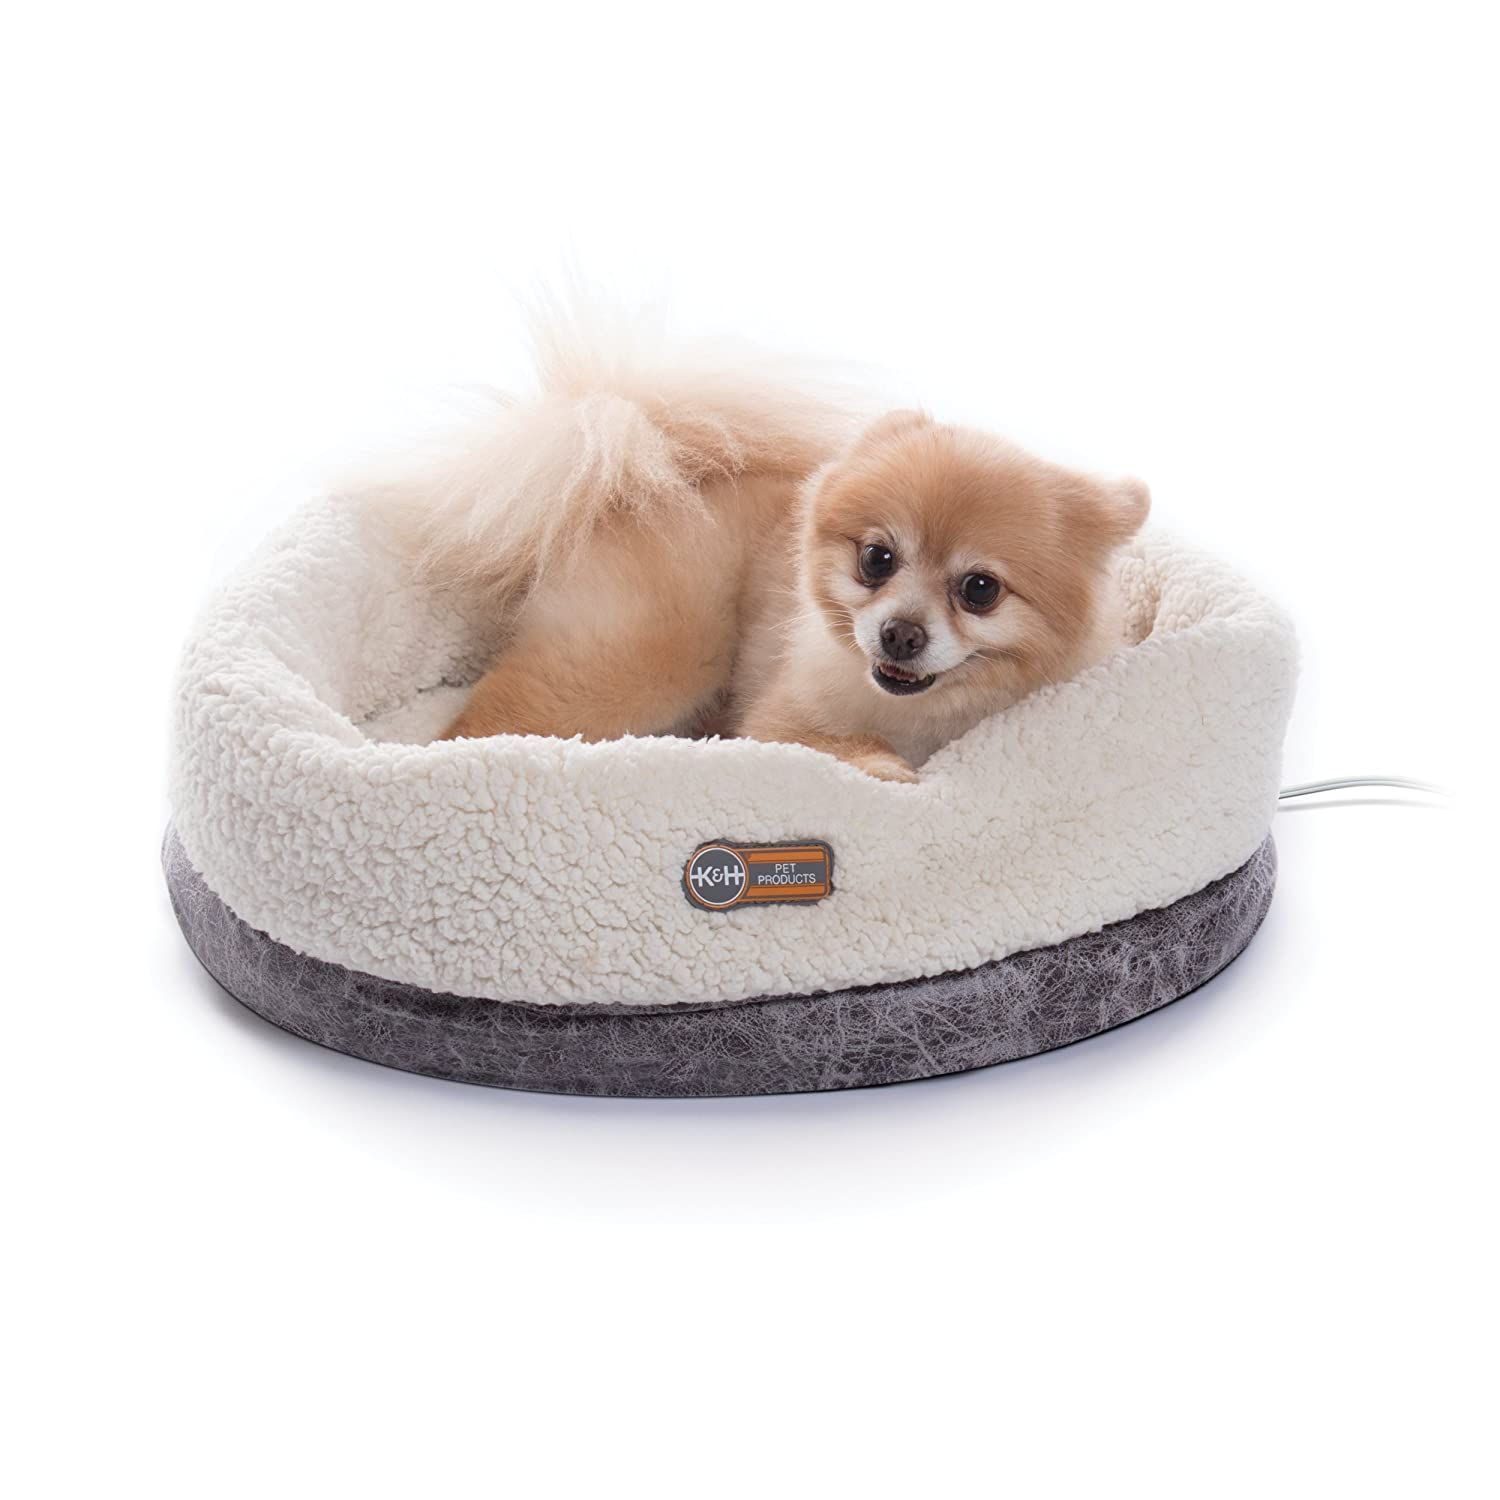 Kandh Pet Products Thermo Snuggle Cup Bomber 14 X 18 Indoor Heated Cat Bed Met Listed Removable 4 Watt Heated Include Heated Cat Bed Cat Bed Snuggles